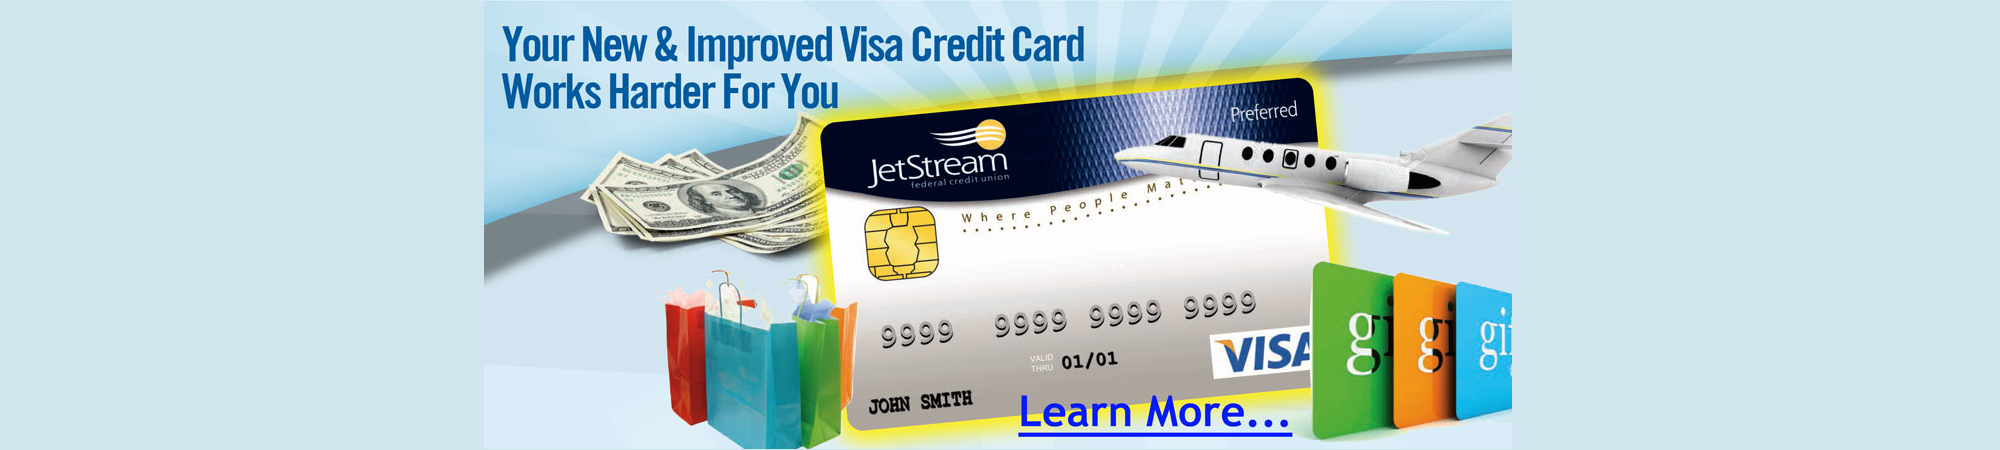 Your new and improved Visa card works hard for you.